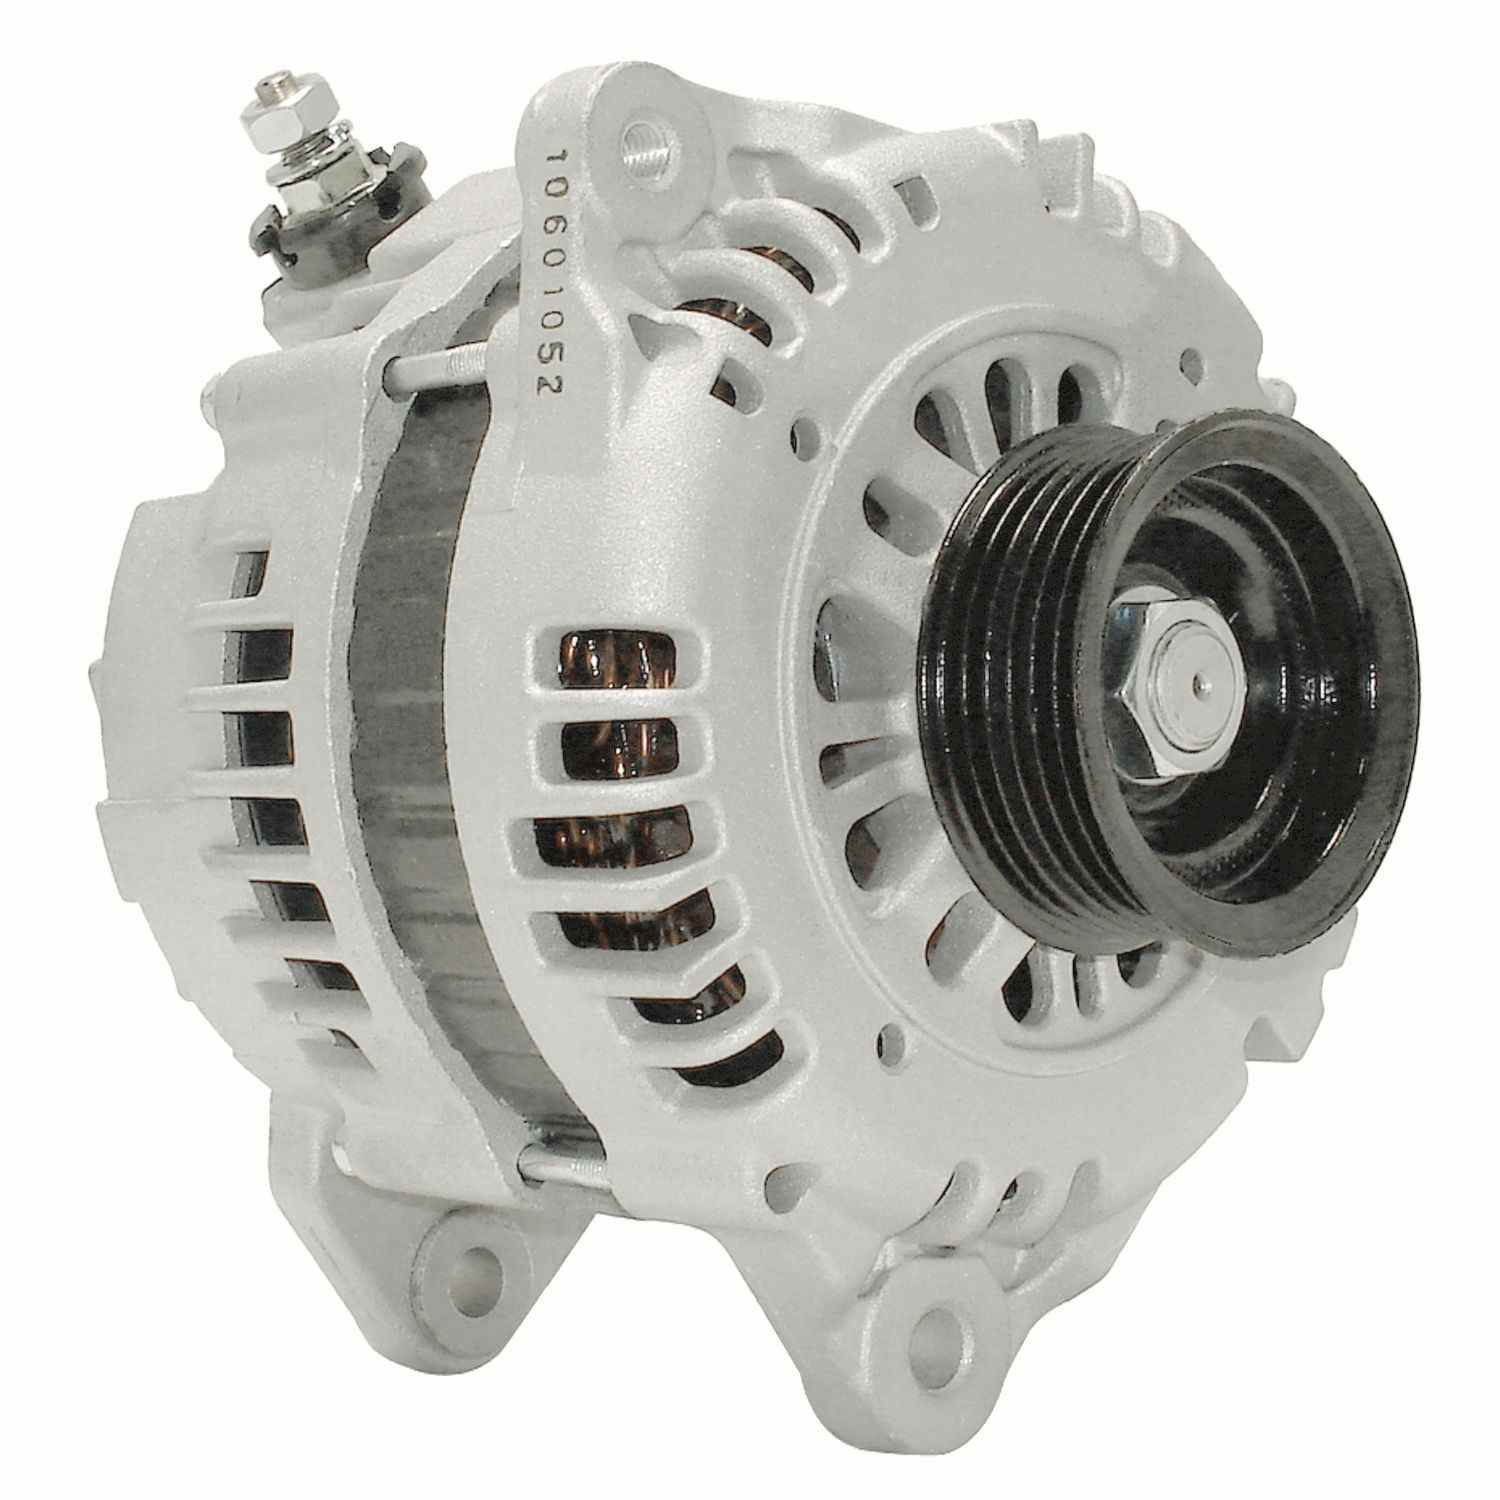 ACDELCO GOLD/PROFESSIONAL - Reman Alternator - DCC 334-2041A